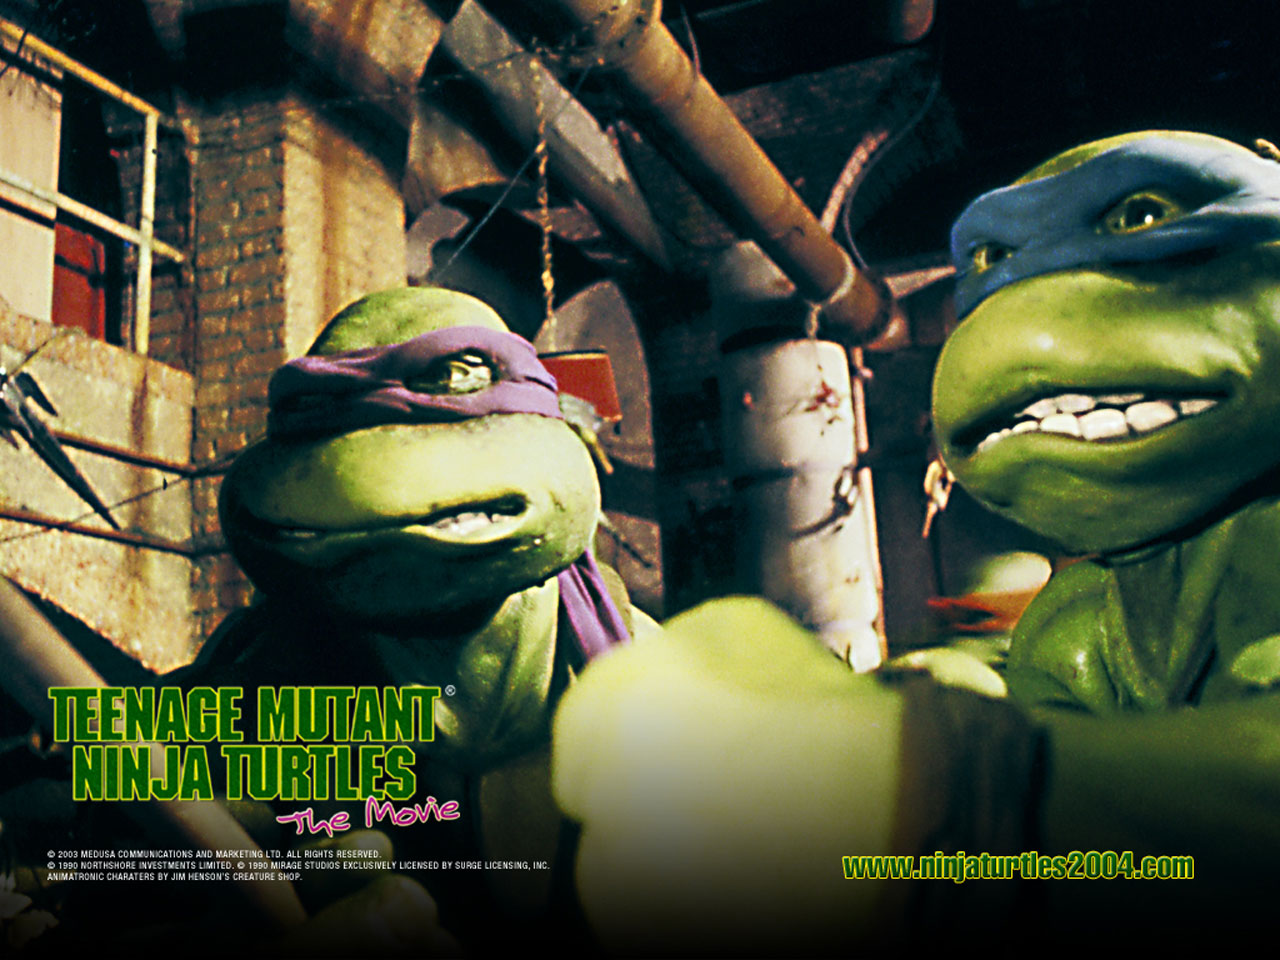 TMNT wallpaper bases on films (6)